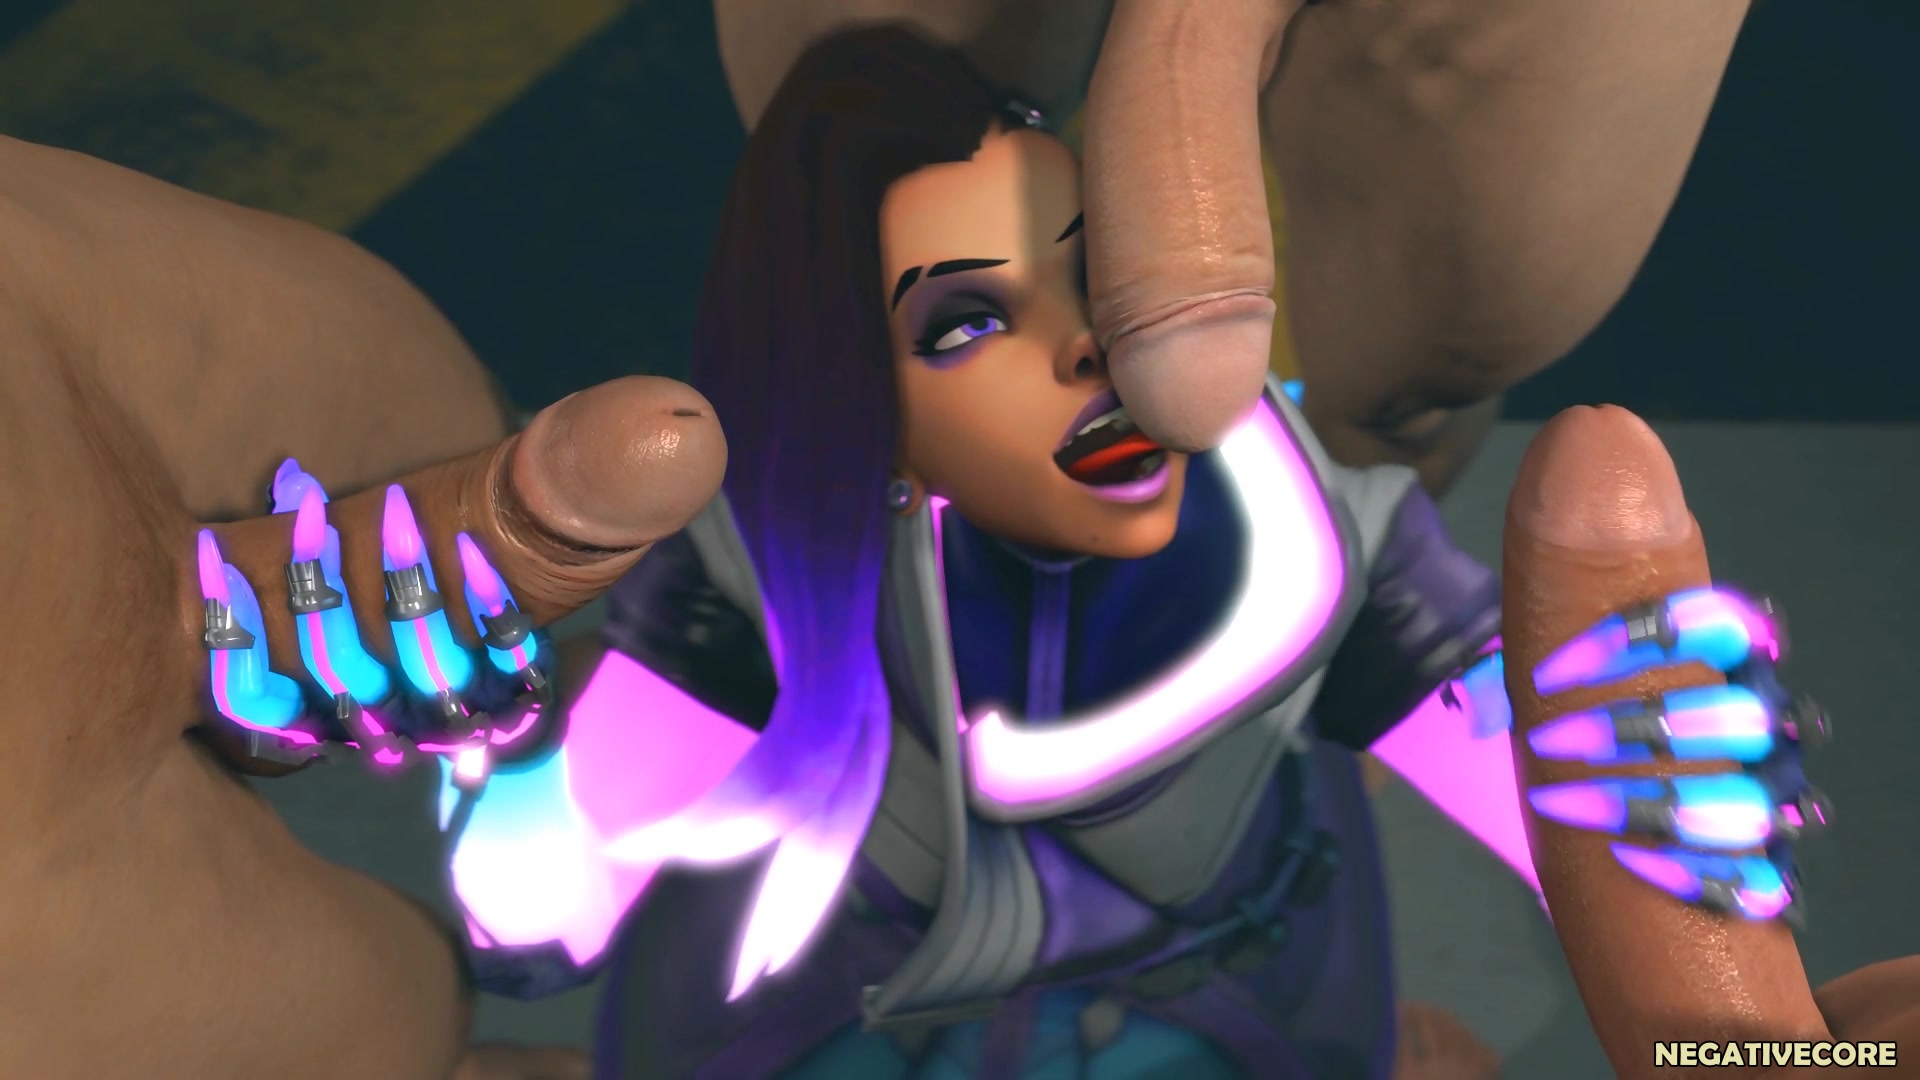 overwatch pharah sucked 3 big cock 3d sfm3d porn - fpo.xxx